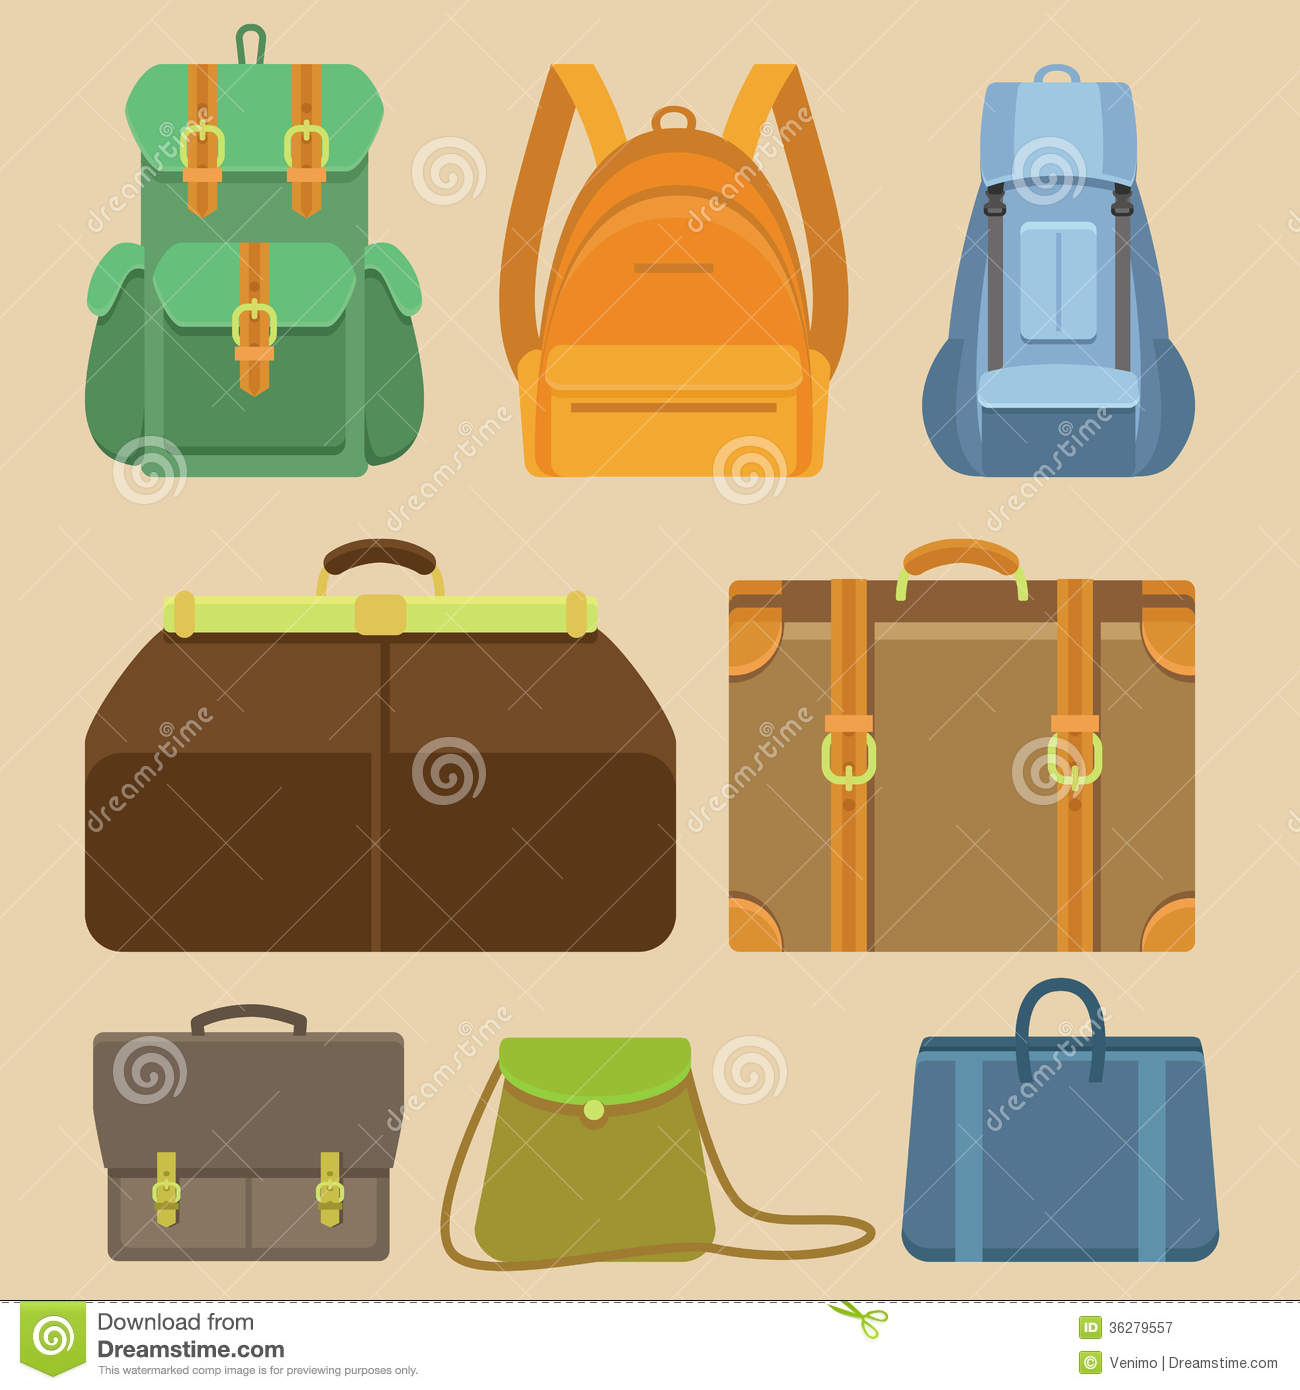 Vector Set Of Flat Icons - Bags And Backpacks Royalty Free